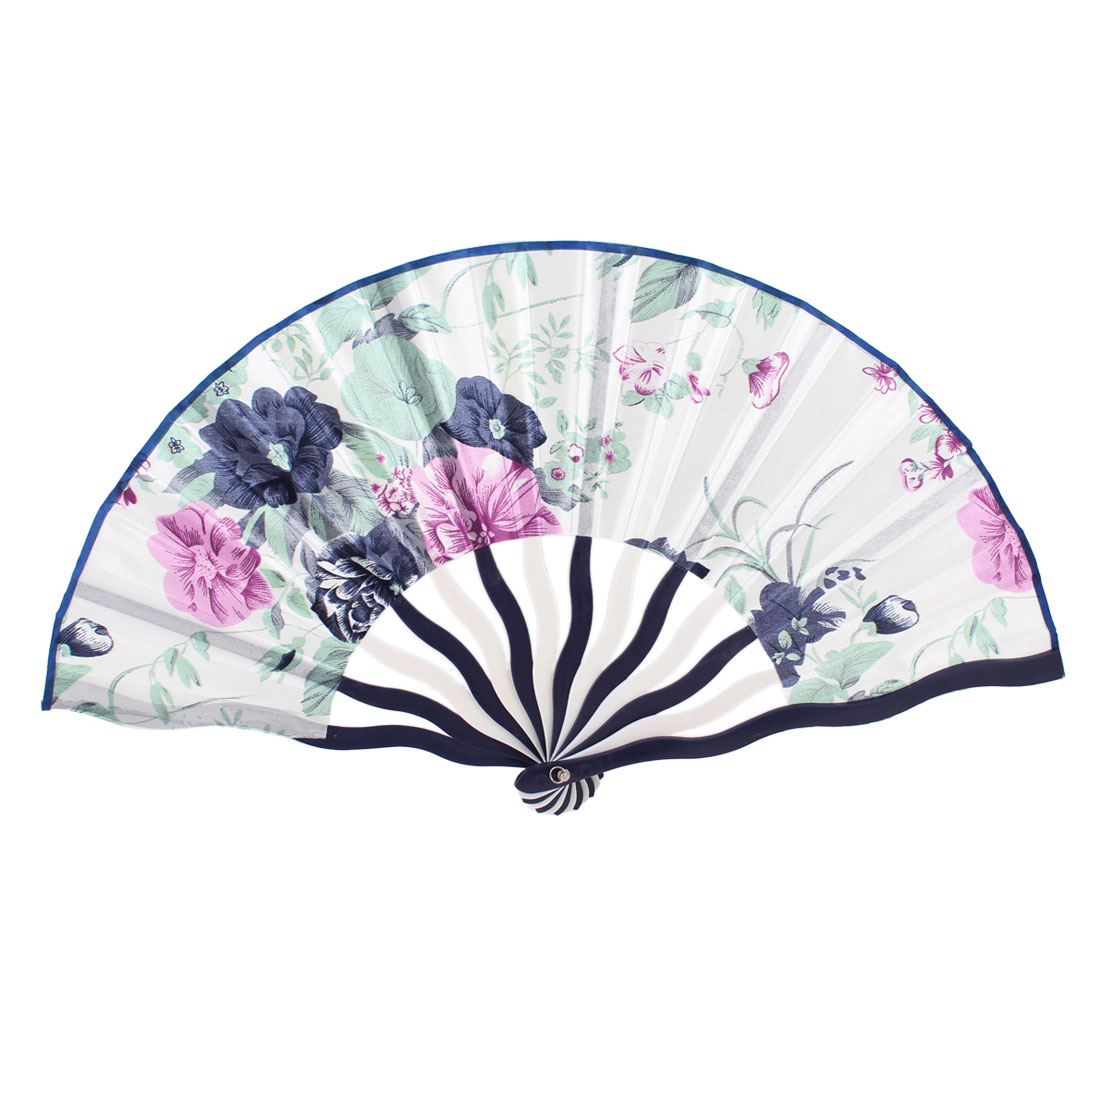 Plastic Frame White Base Foldaway Summer Cooling Hand Fan for Ladies